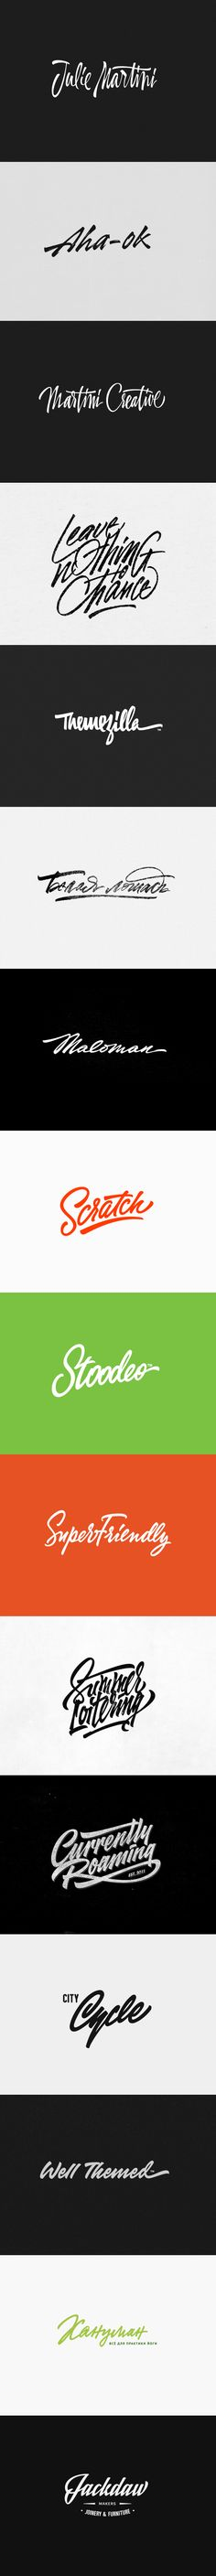 Recent logos and t-shirt letterings by Sergey Shapiro, via Behance